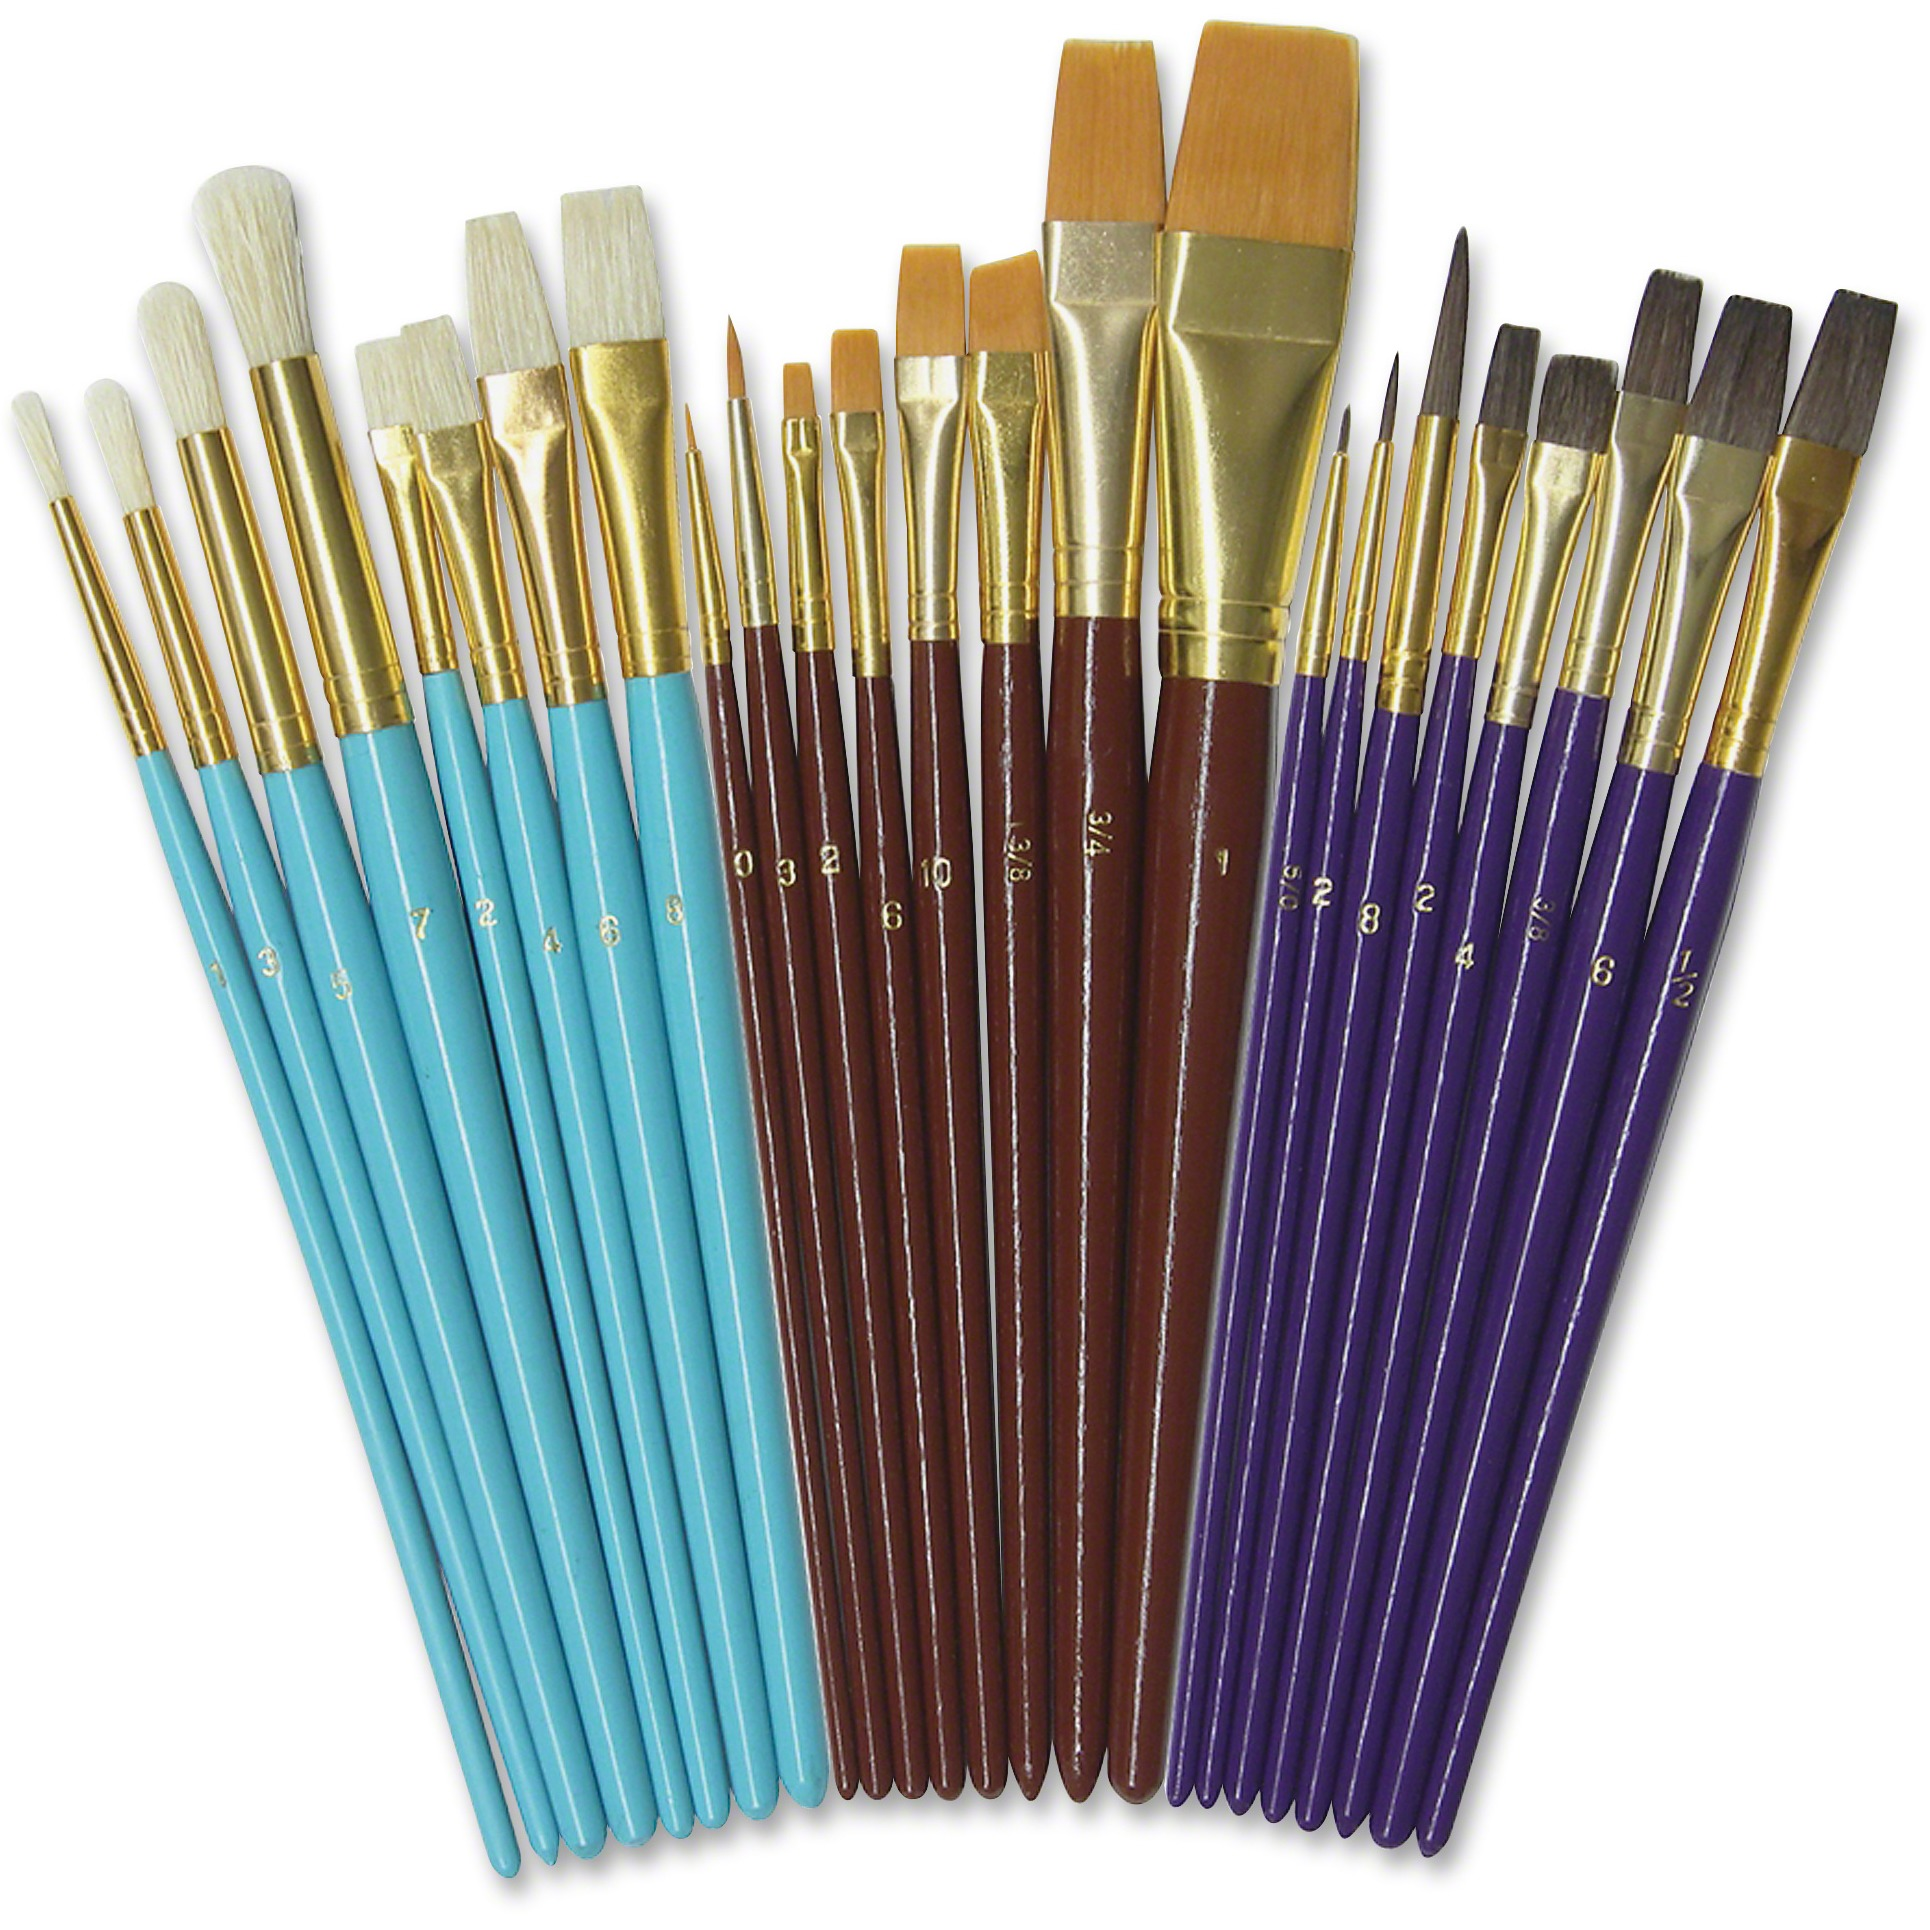 Creativity Street Deluxe Brush Assortment, Assorted, 24 / Set (Quantity)